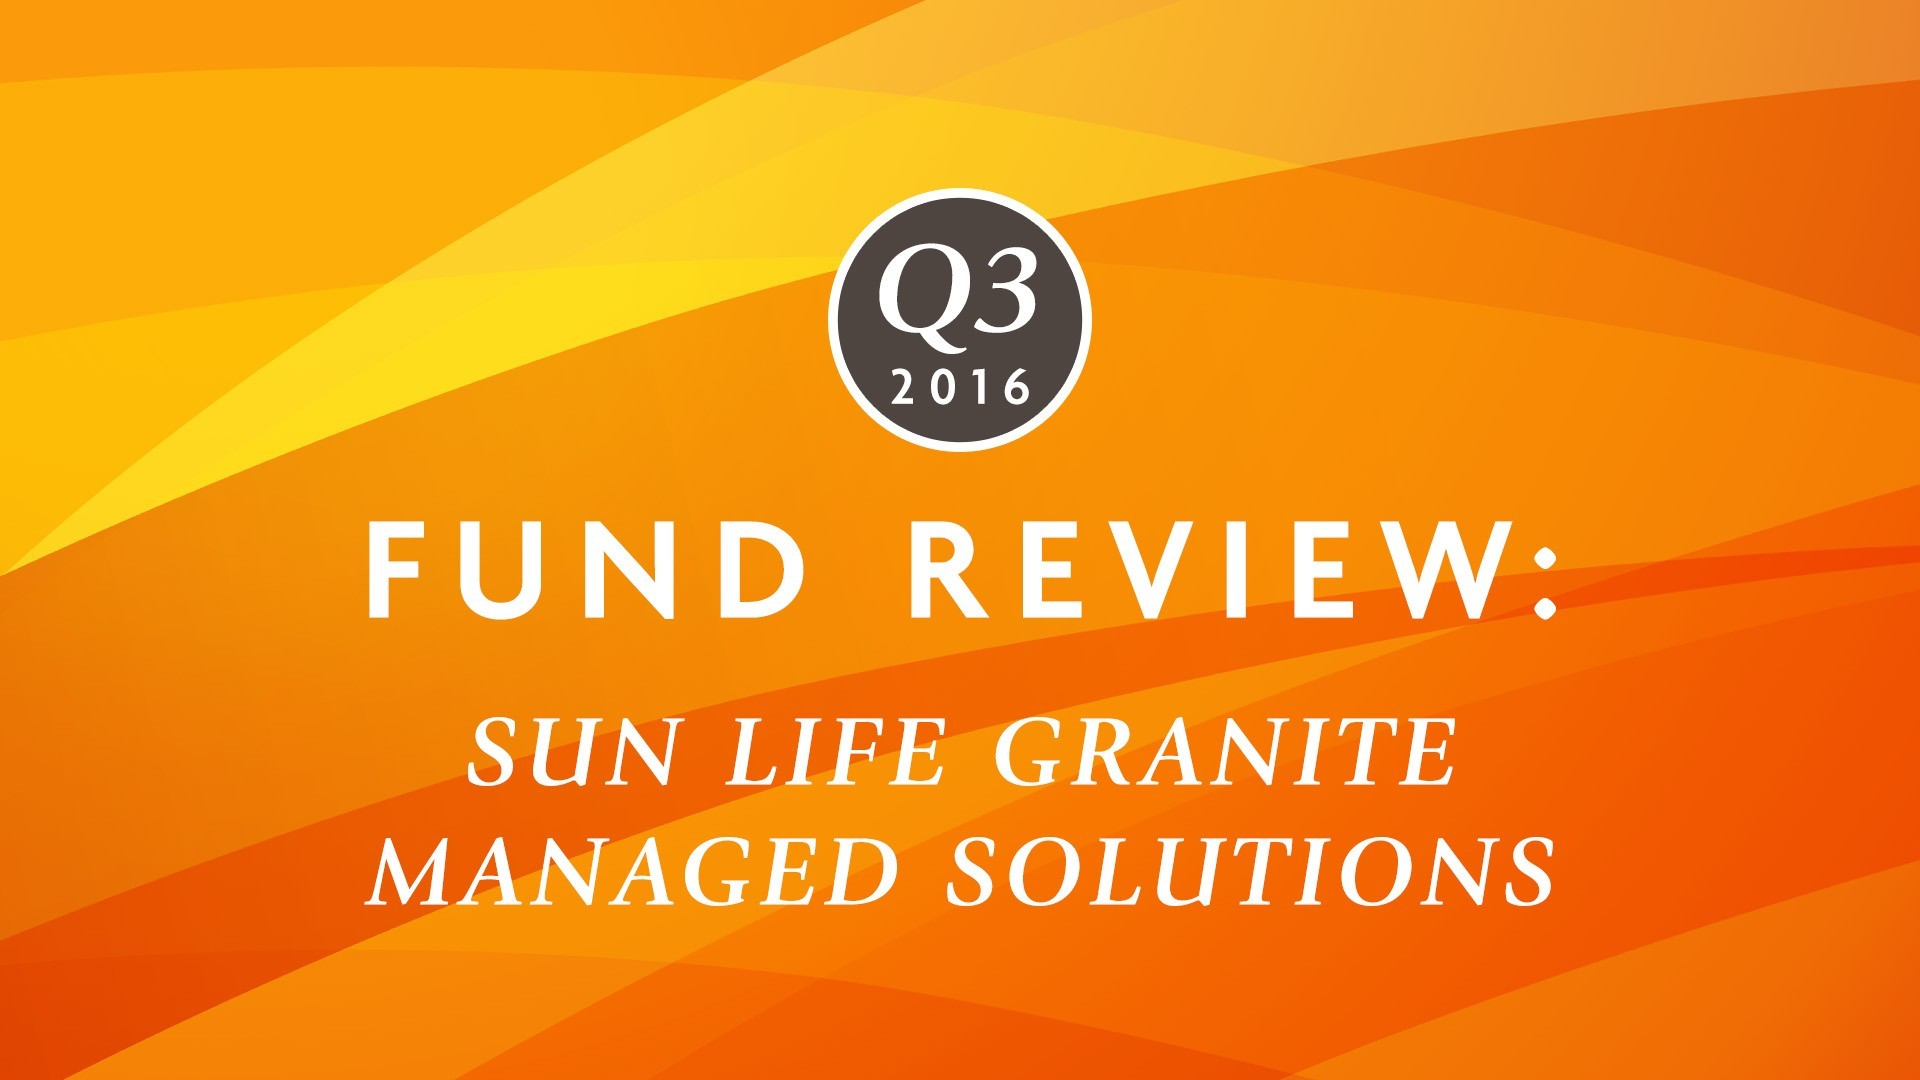 Q3 2016 | Fund review: Sun Life Granite Managed Solutions